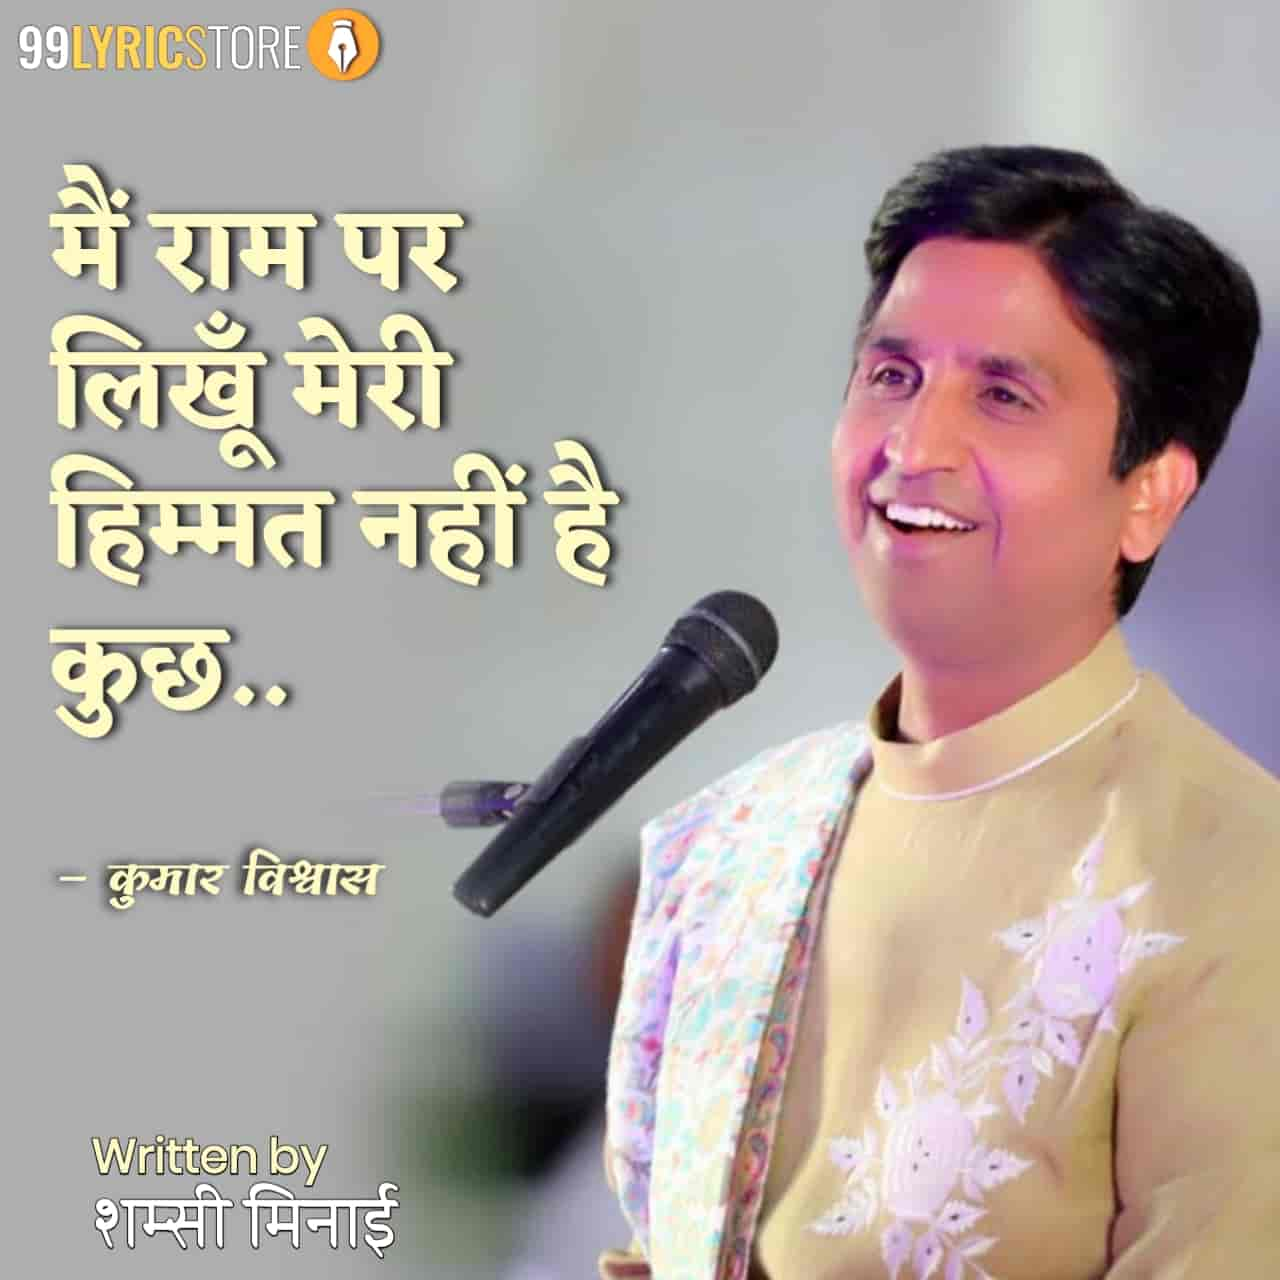 This beautiful Nazm of famous Urdu poet 'Shamsi Minai', 'Main Ram Par Likhun Meri Himmat Nahin Hai Kuch' was written on Lord Rama 50 years ago. This Nazm was presented by the famous young poet 'Kumar Vishwas' in a very rhythmically, Sahitya Aaj Tak the program organized by Aaj Tak.